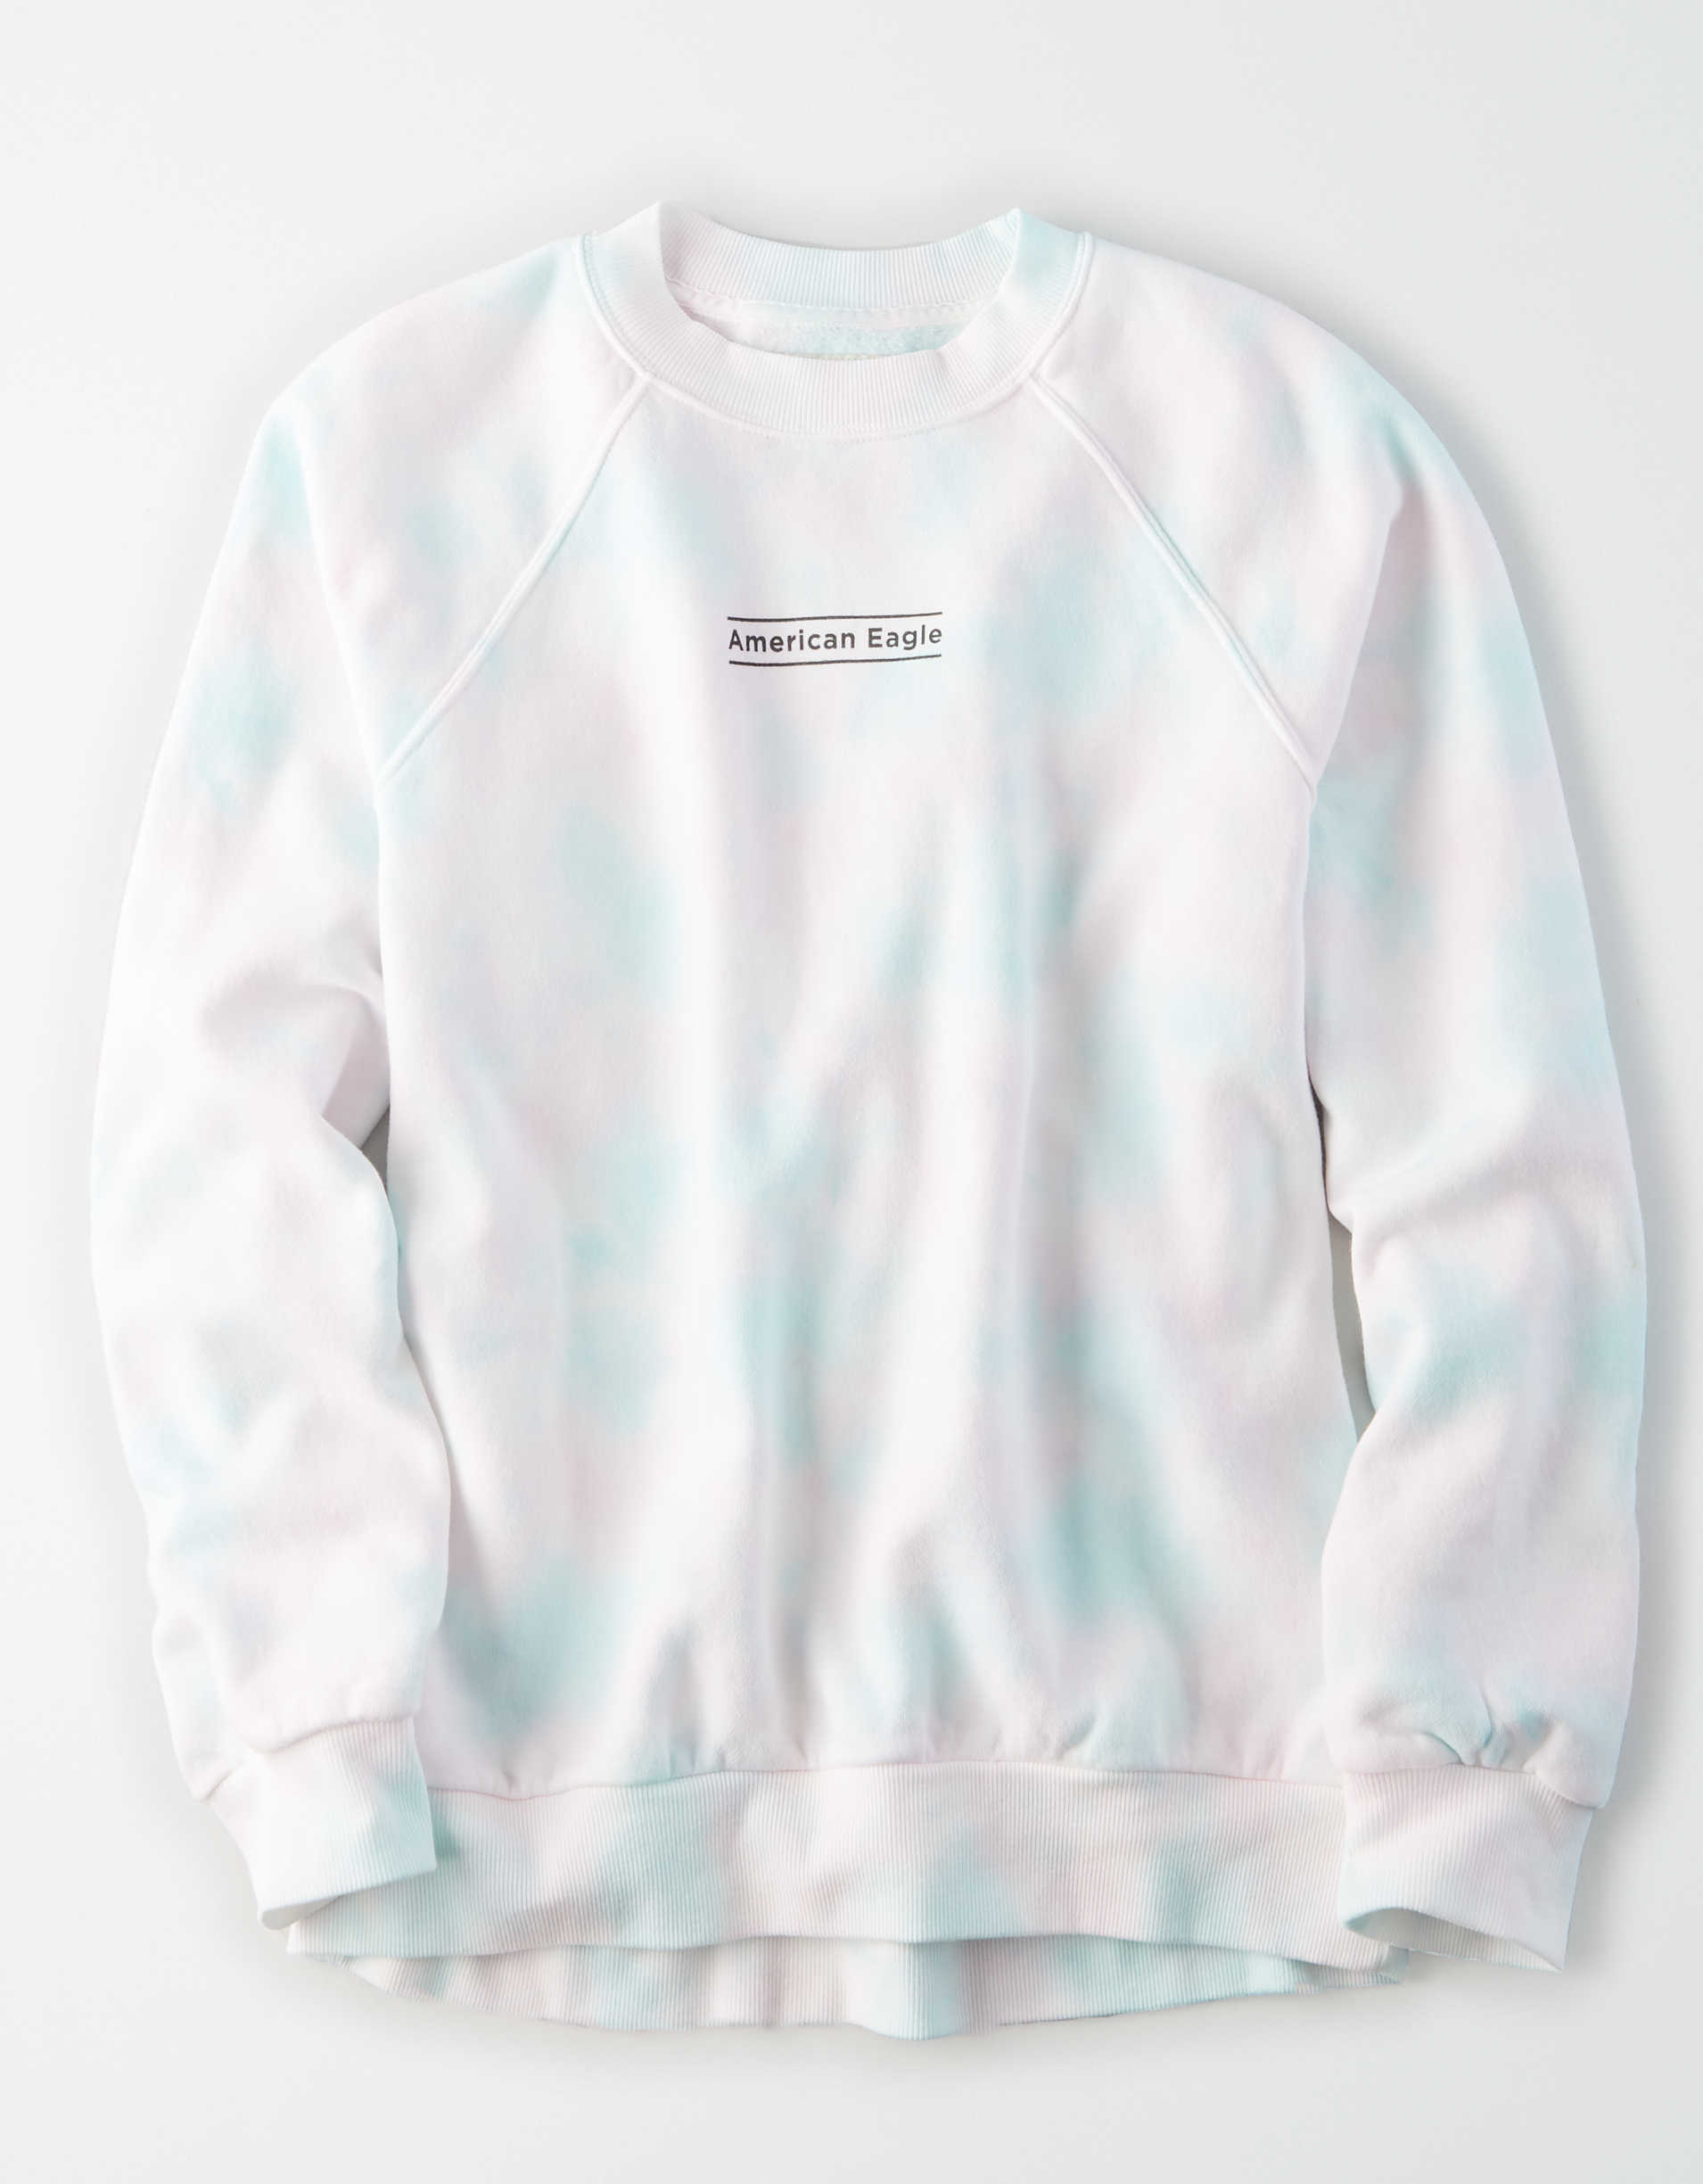 AE Fleece Graphic Crew Neck Sweatshirt